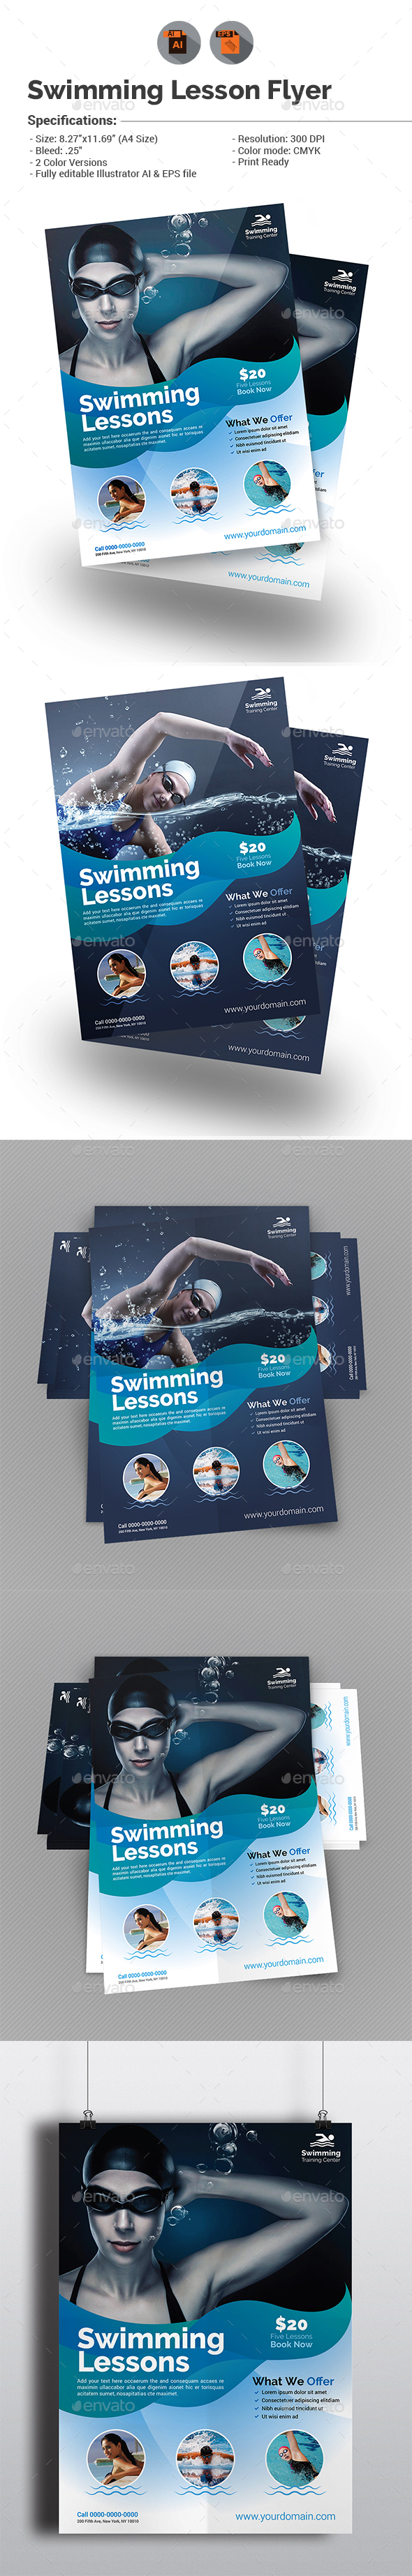 Swimming Lessons Flyer Template - Sports Events